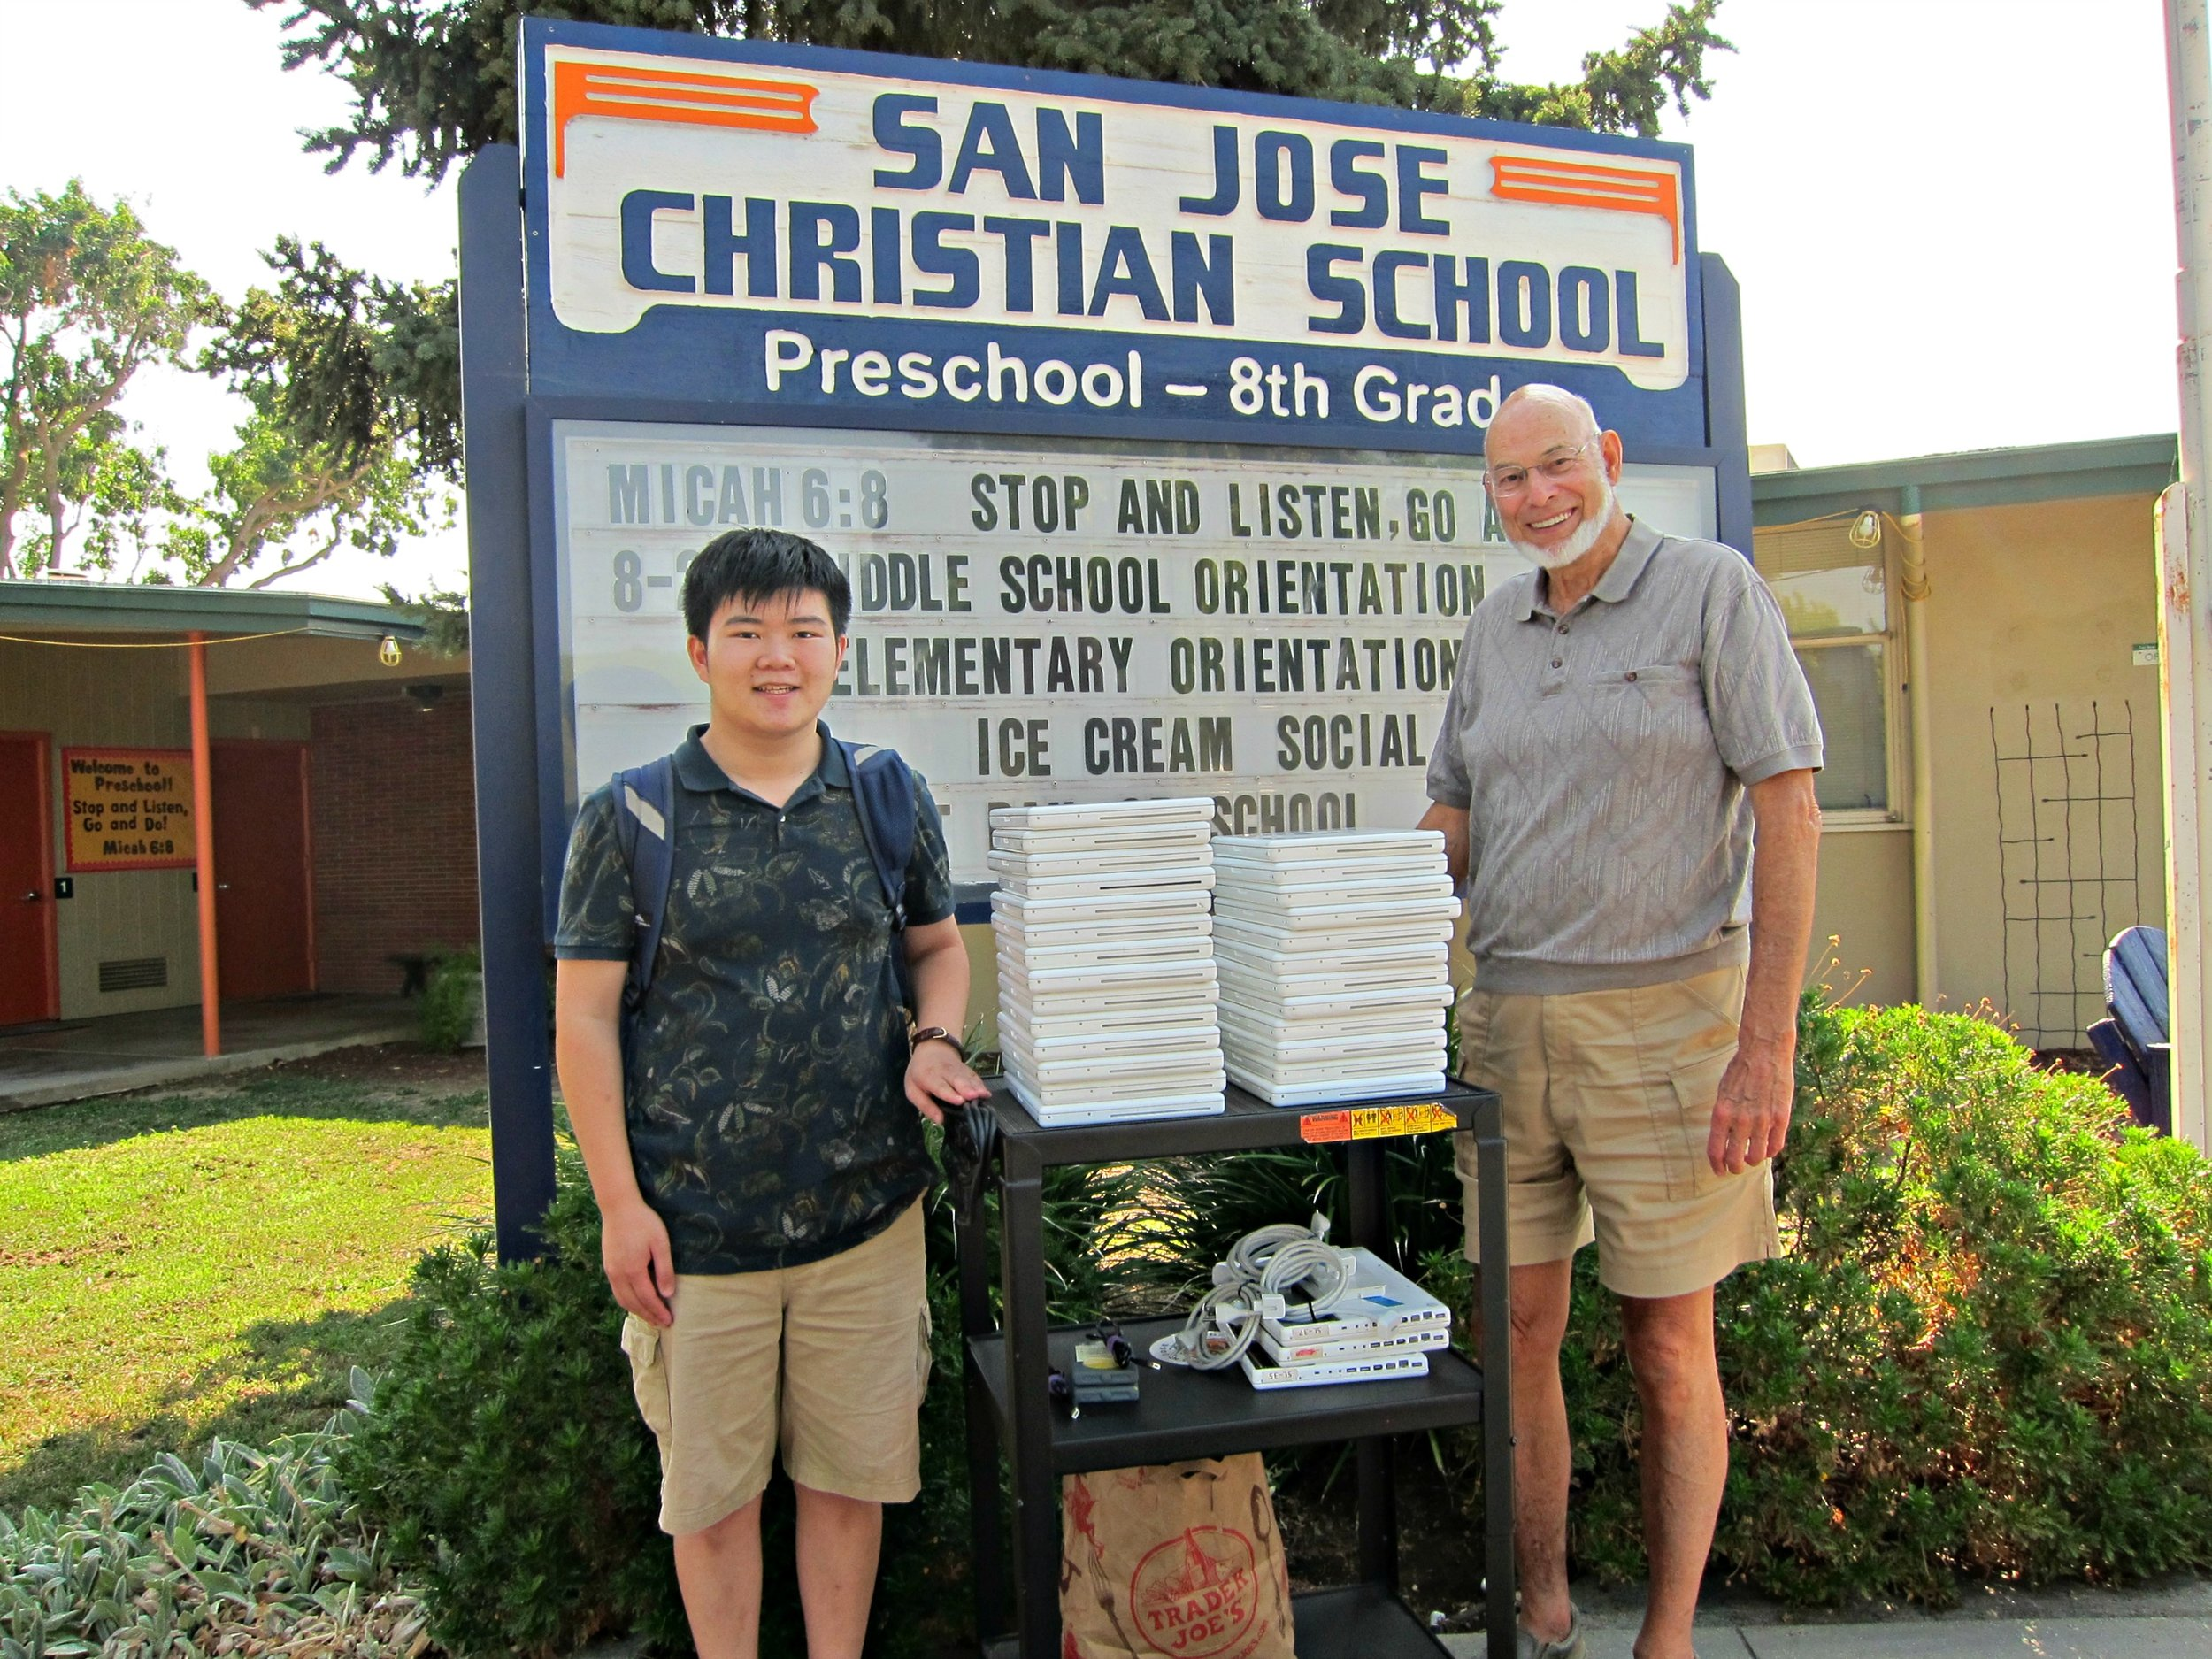 John Wynbeek, San Jose Christian School IT Director (right) and Terence Lee, EqOpTech Founder